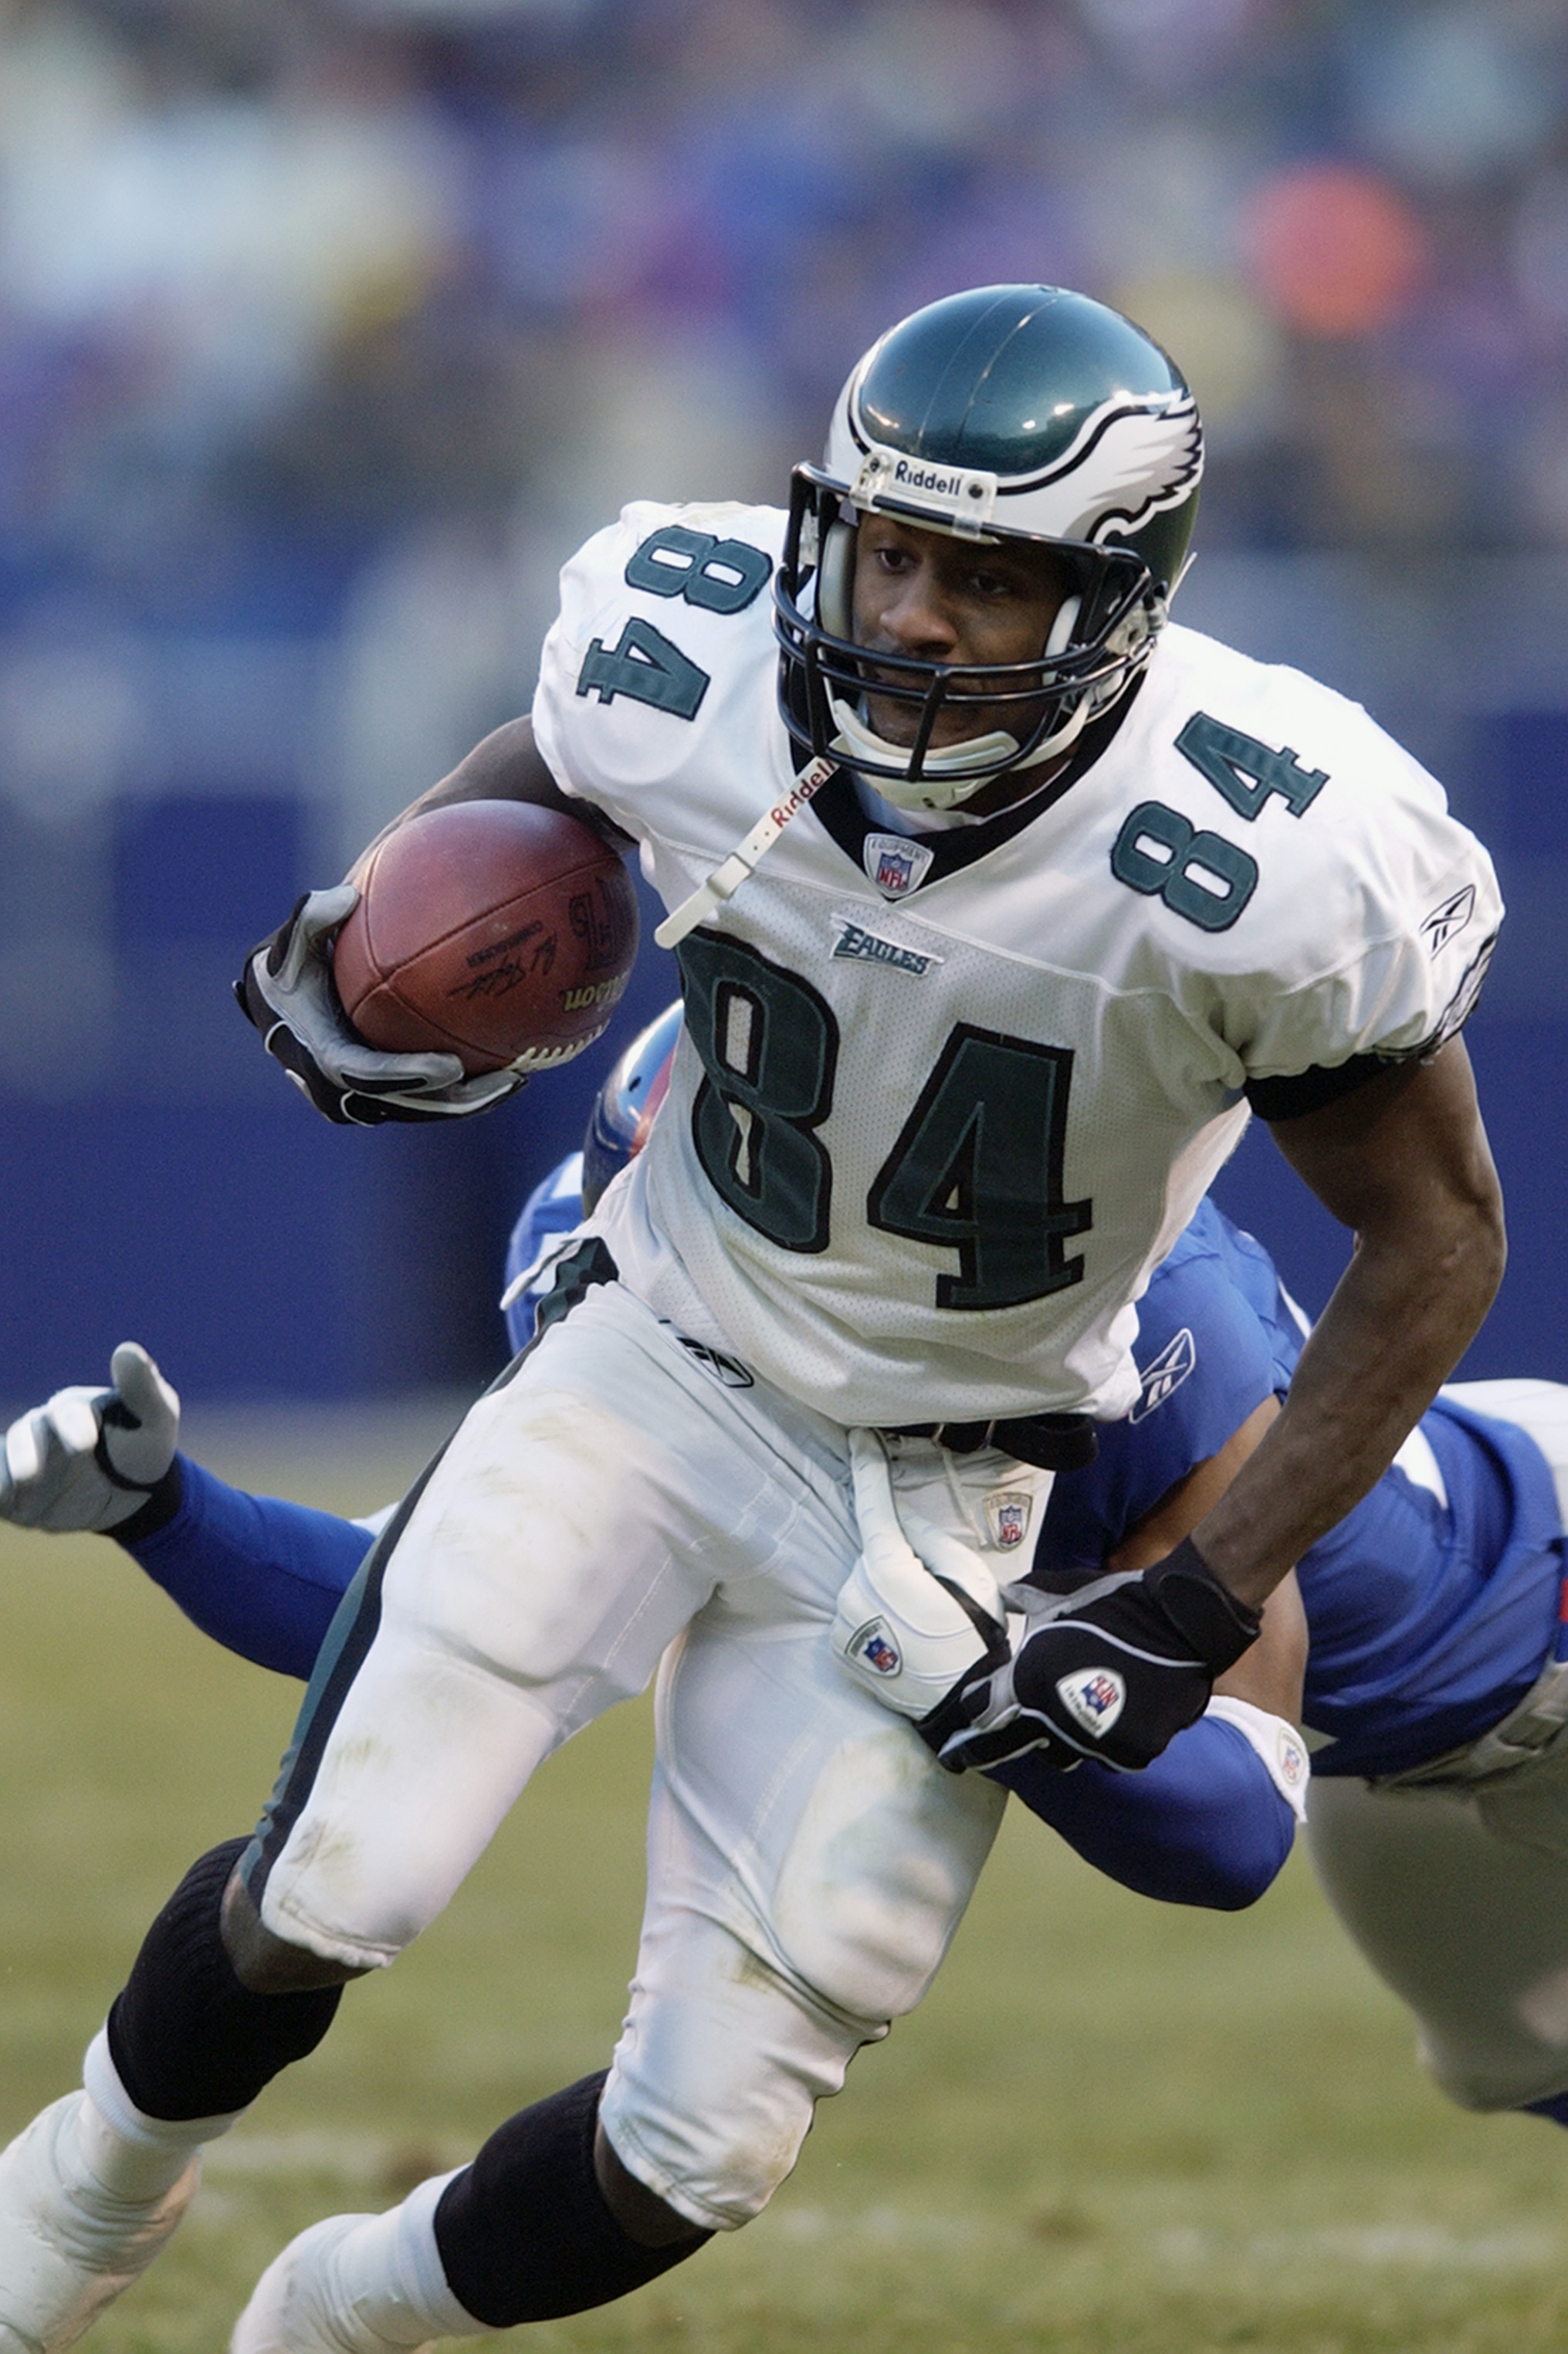 EAST RUTHERFORD, NJ - DECEMBER 28:  Wide receiver Freddie Mitchell #84 of the Philadelphia Eagles carries the ball against the New York Giants during the game at Giant Stadium on December 28, 2002 in East Rutherford, New Jersey. The Giants defeated the Ea